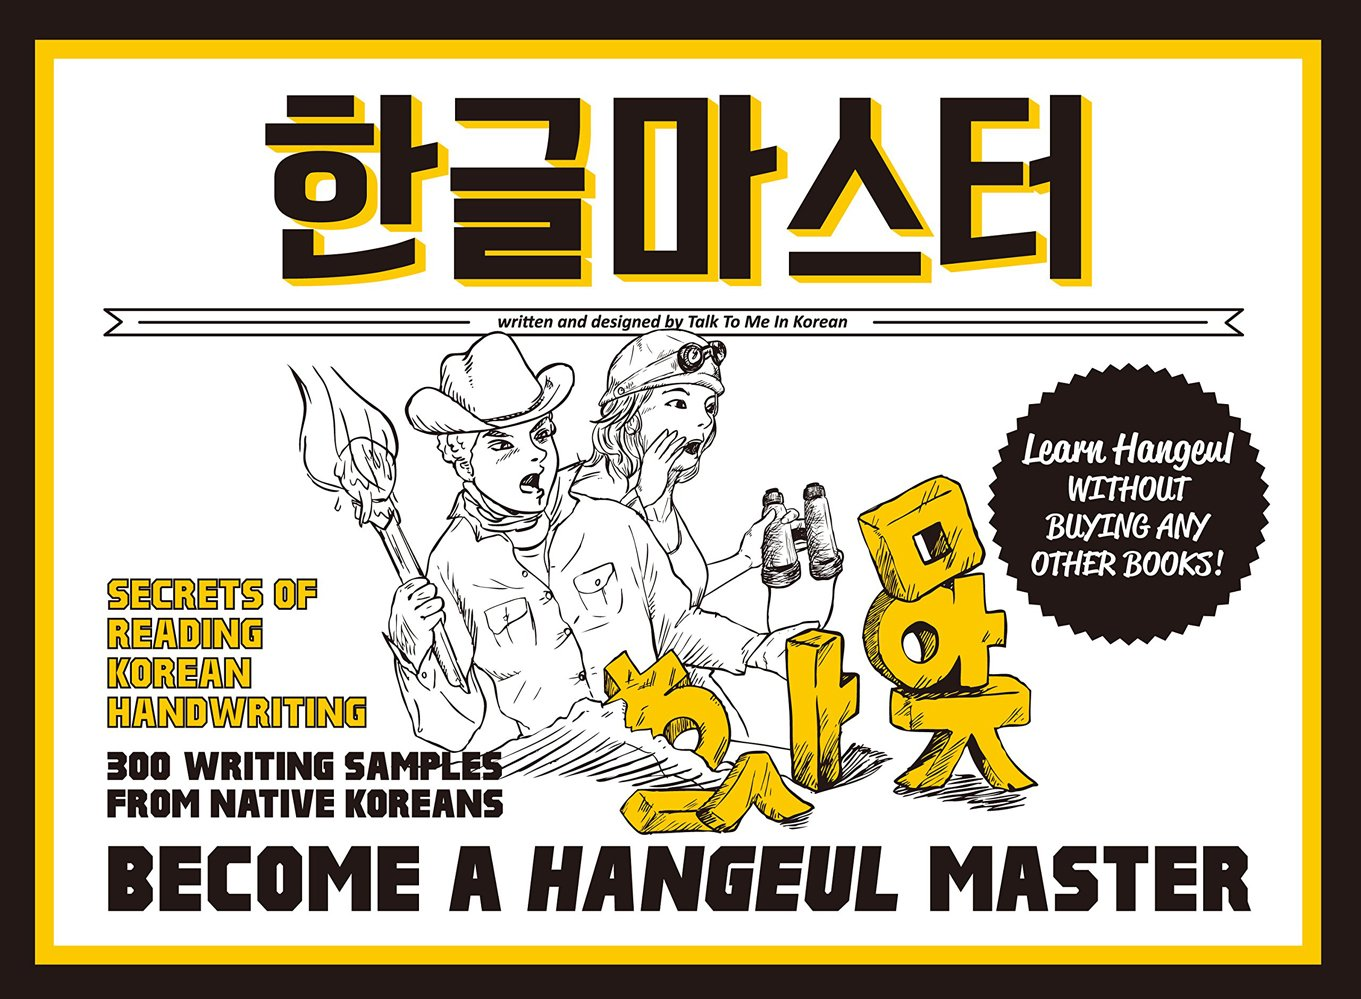 Become A Hangeul Master  Secrets Of Reading Korean Handwriting   300 Writing Samples From Native Koreans